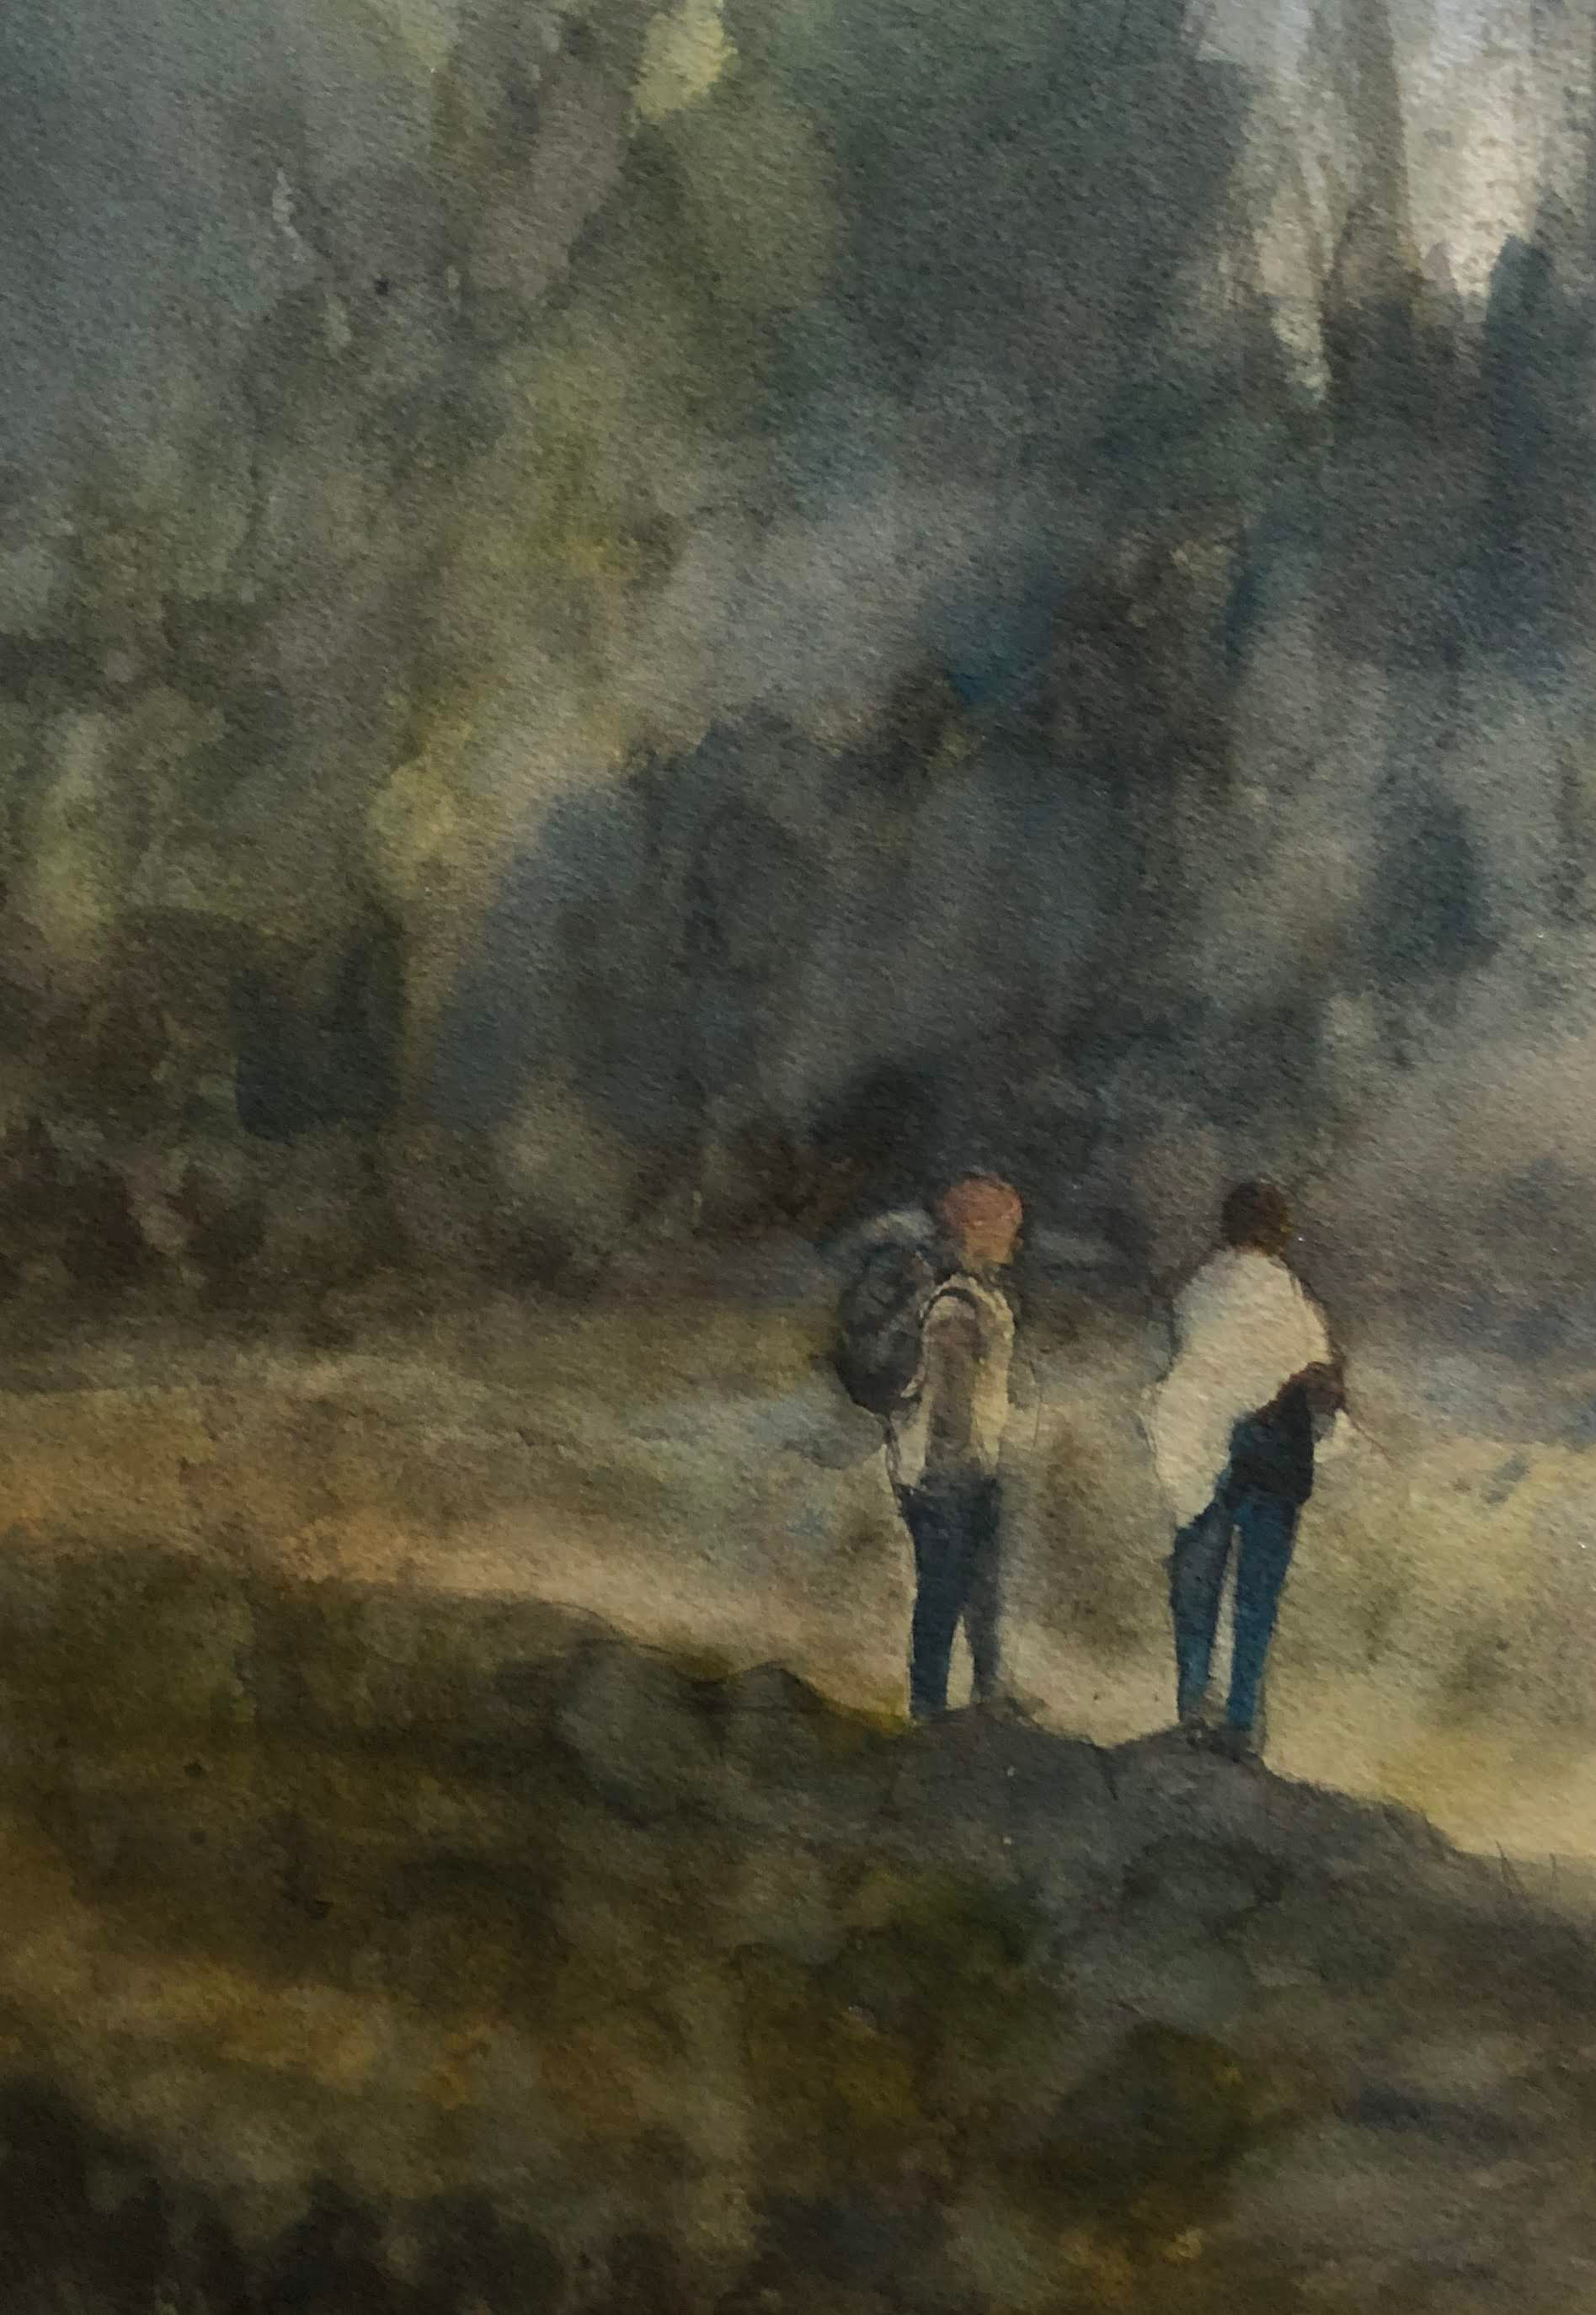 Hiking together watercolor 9x13 2018 s9ahbn